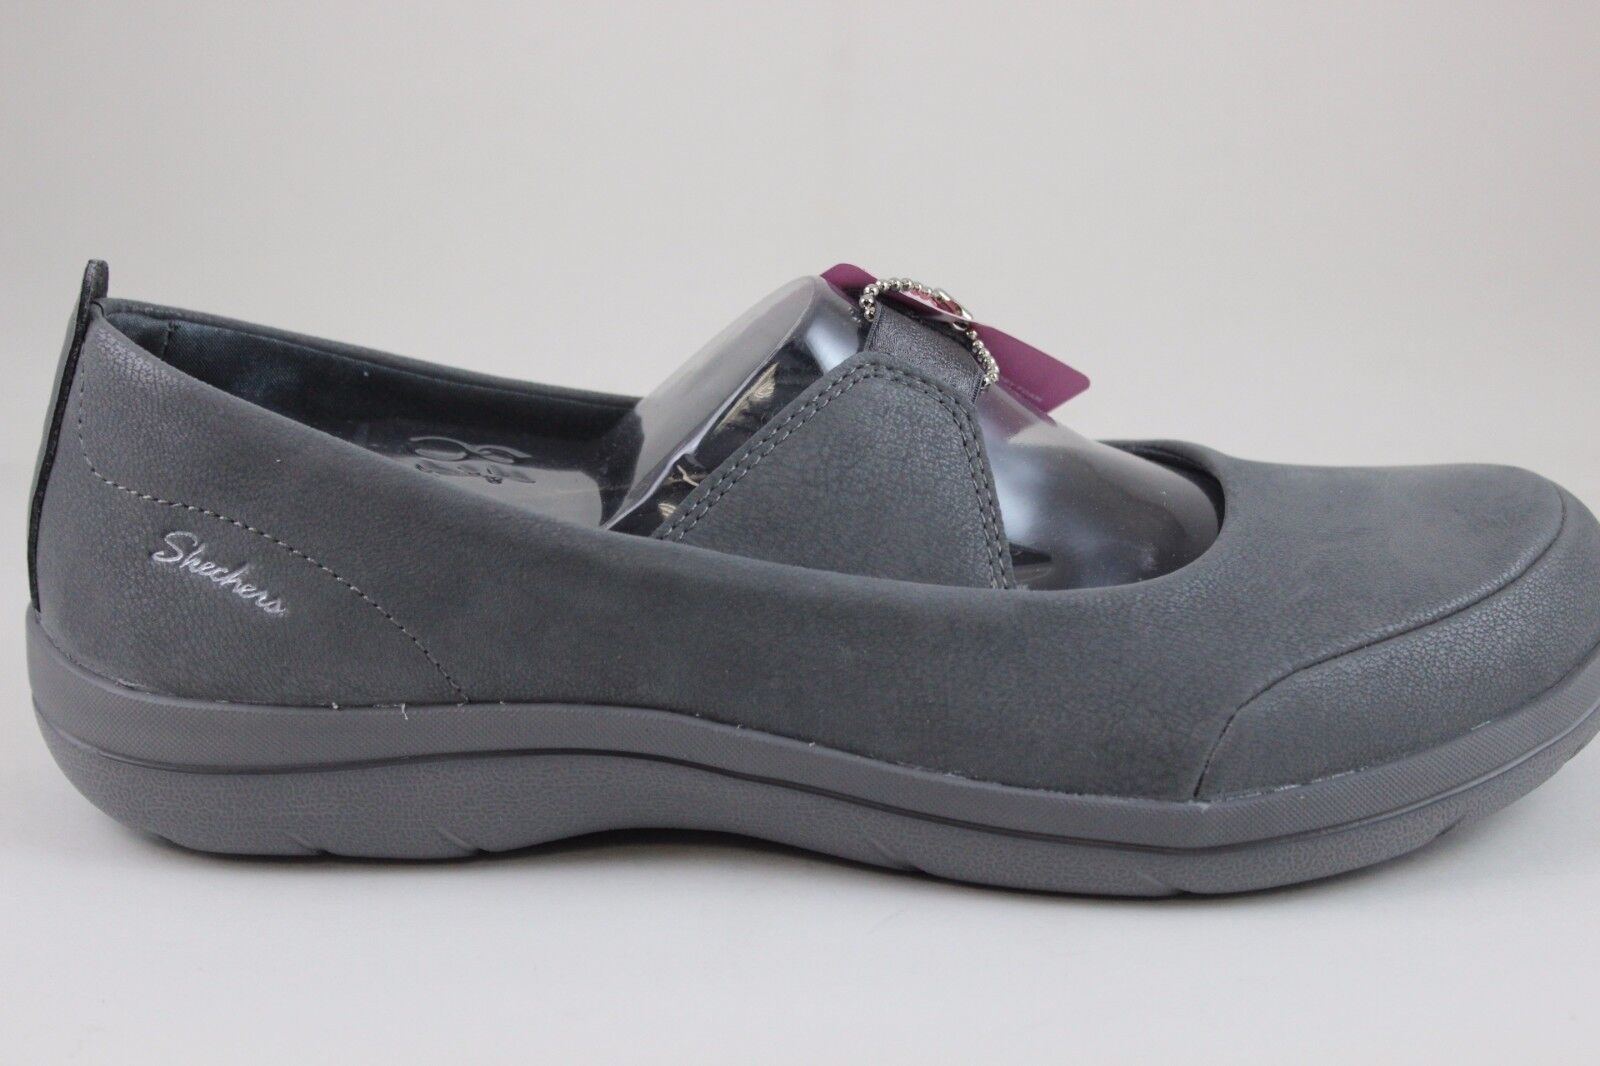 ada131edaa4c Womens Skechers Lite Step Helium Shoes in Charcoal From Get The ...